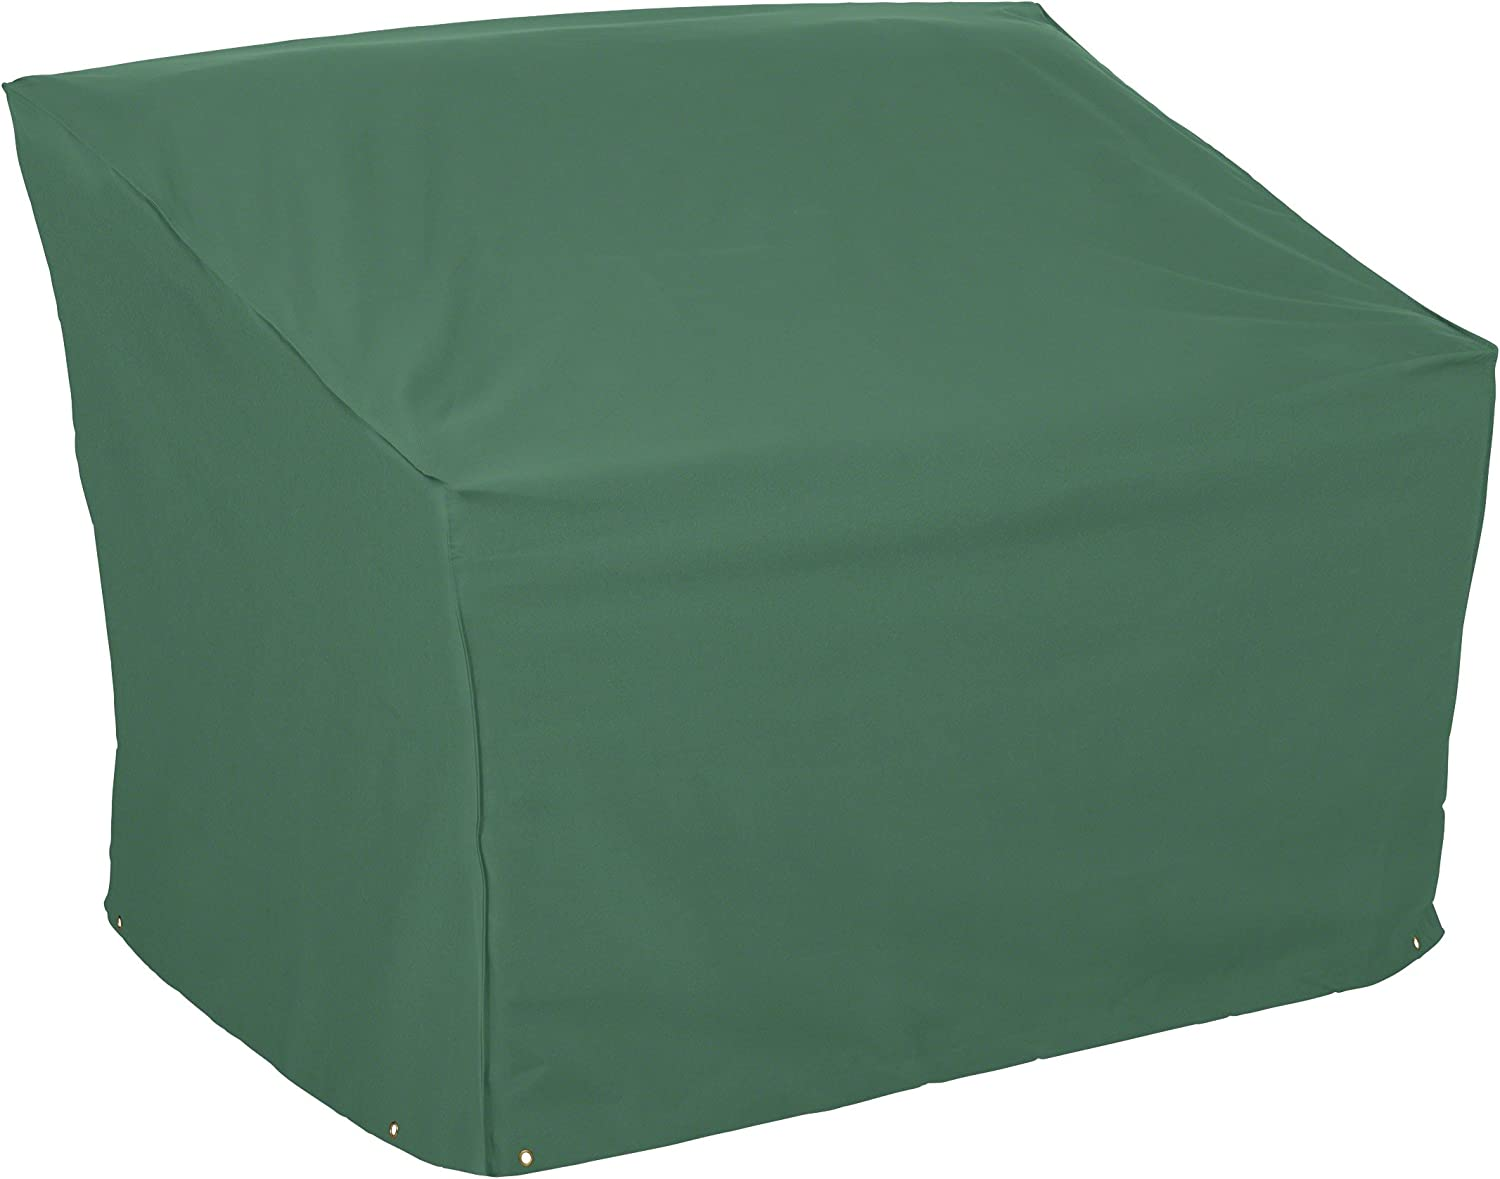 Classic Accessories 55-438-041101-11 Atrium Patio Bench Cover – Weather Water Resistant Patio Set Cover with UV Protection, Large, Green